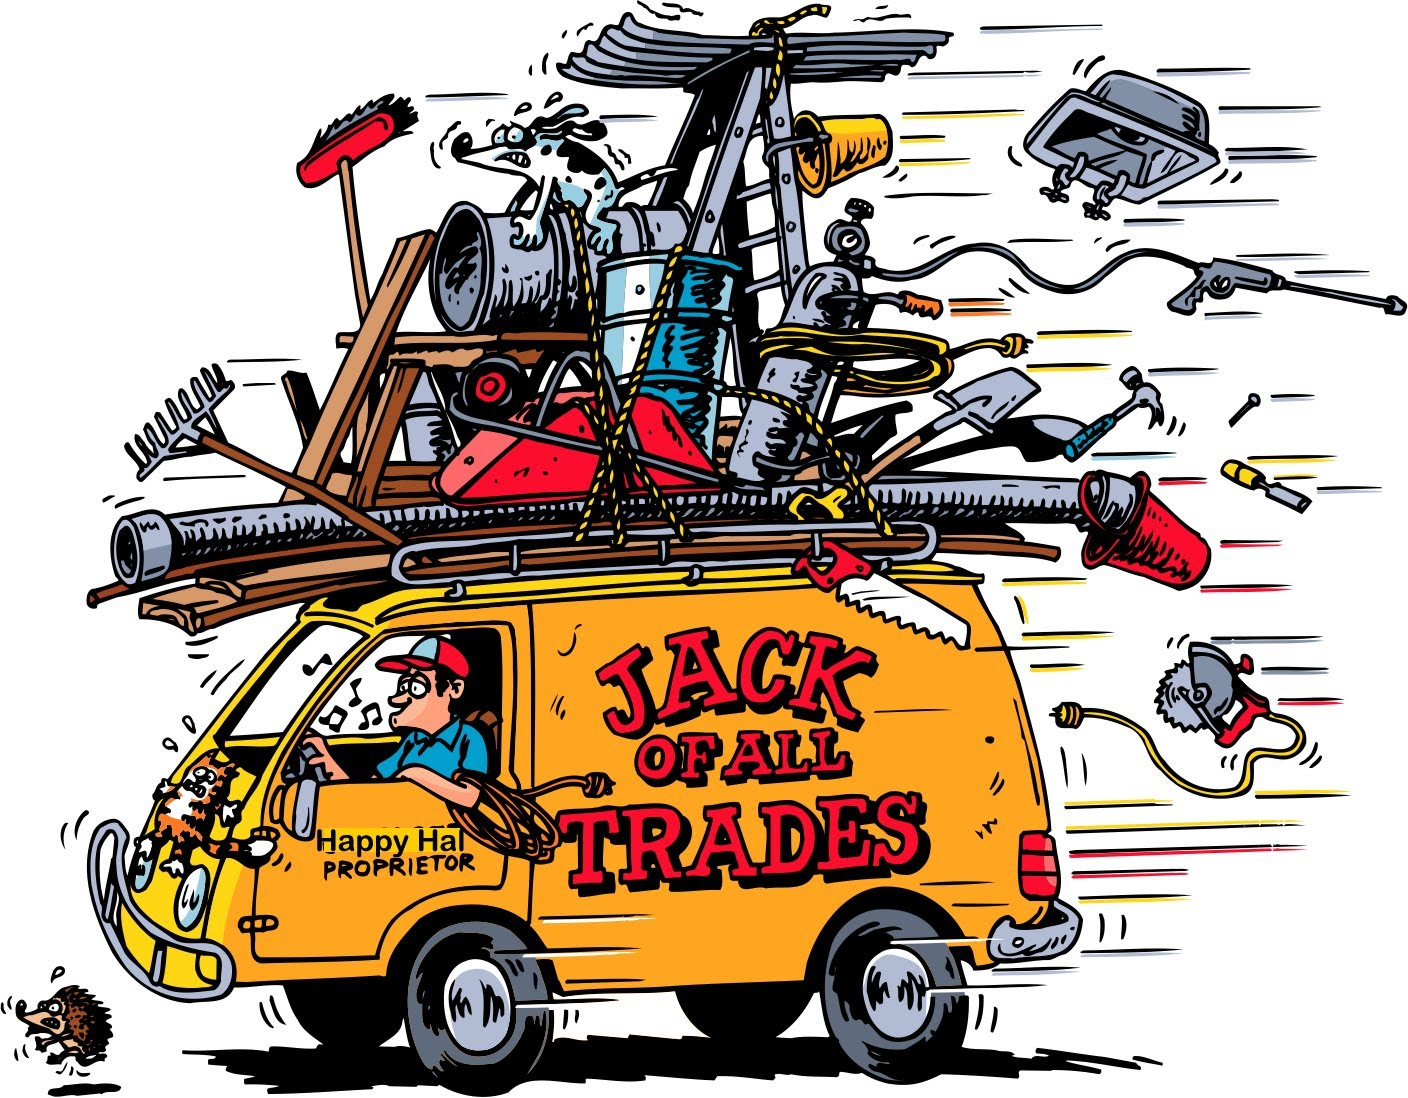 Jack clipart all trade. Of trades or master